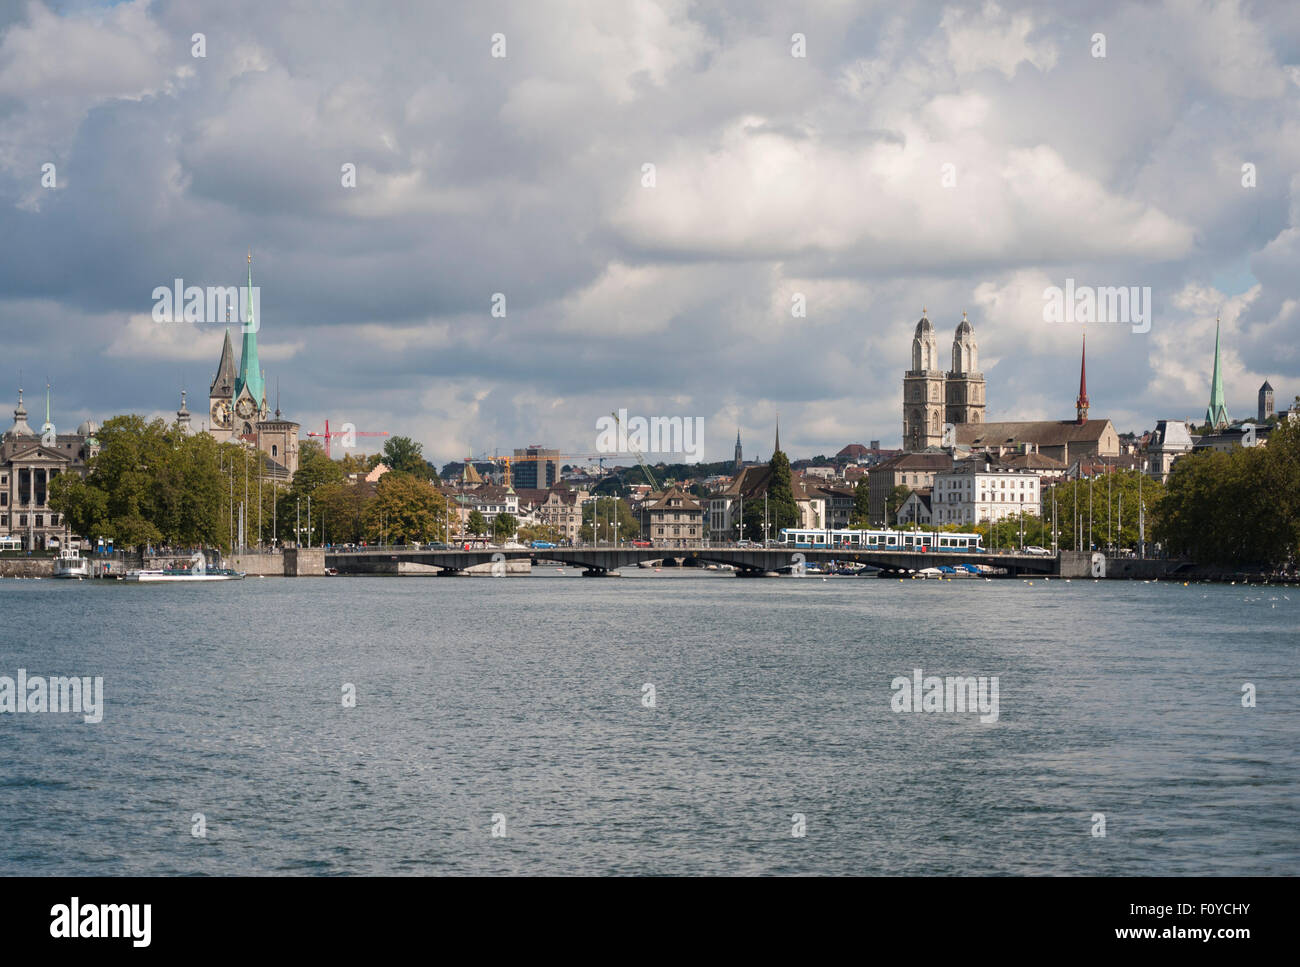 Panoramic view of Zurich, seen from lake Zurich, looking downstream the river of Limmat. Stock Photo